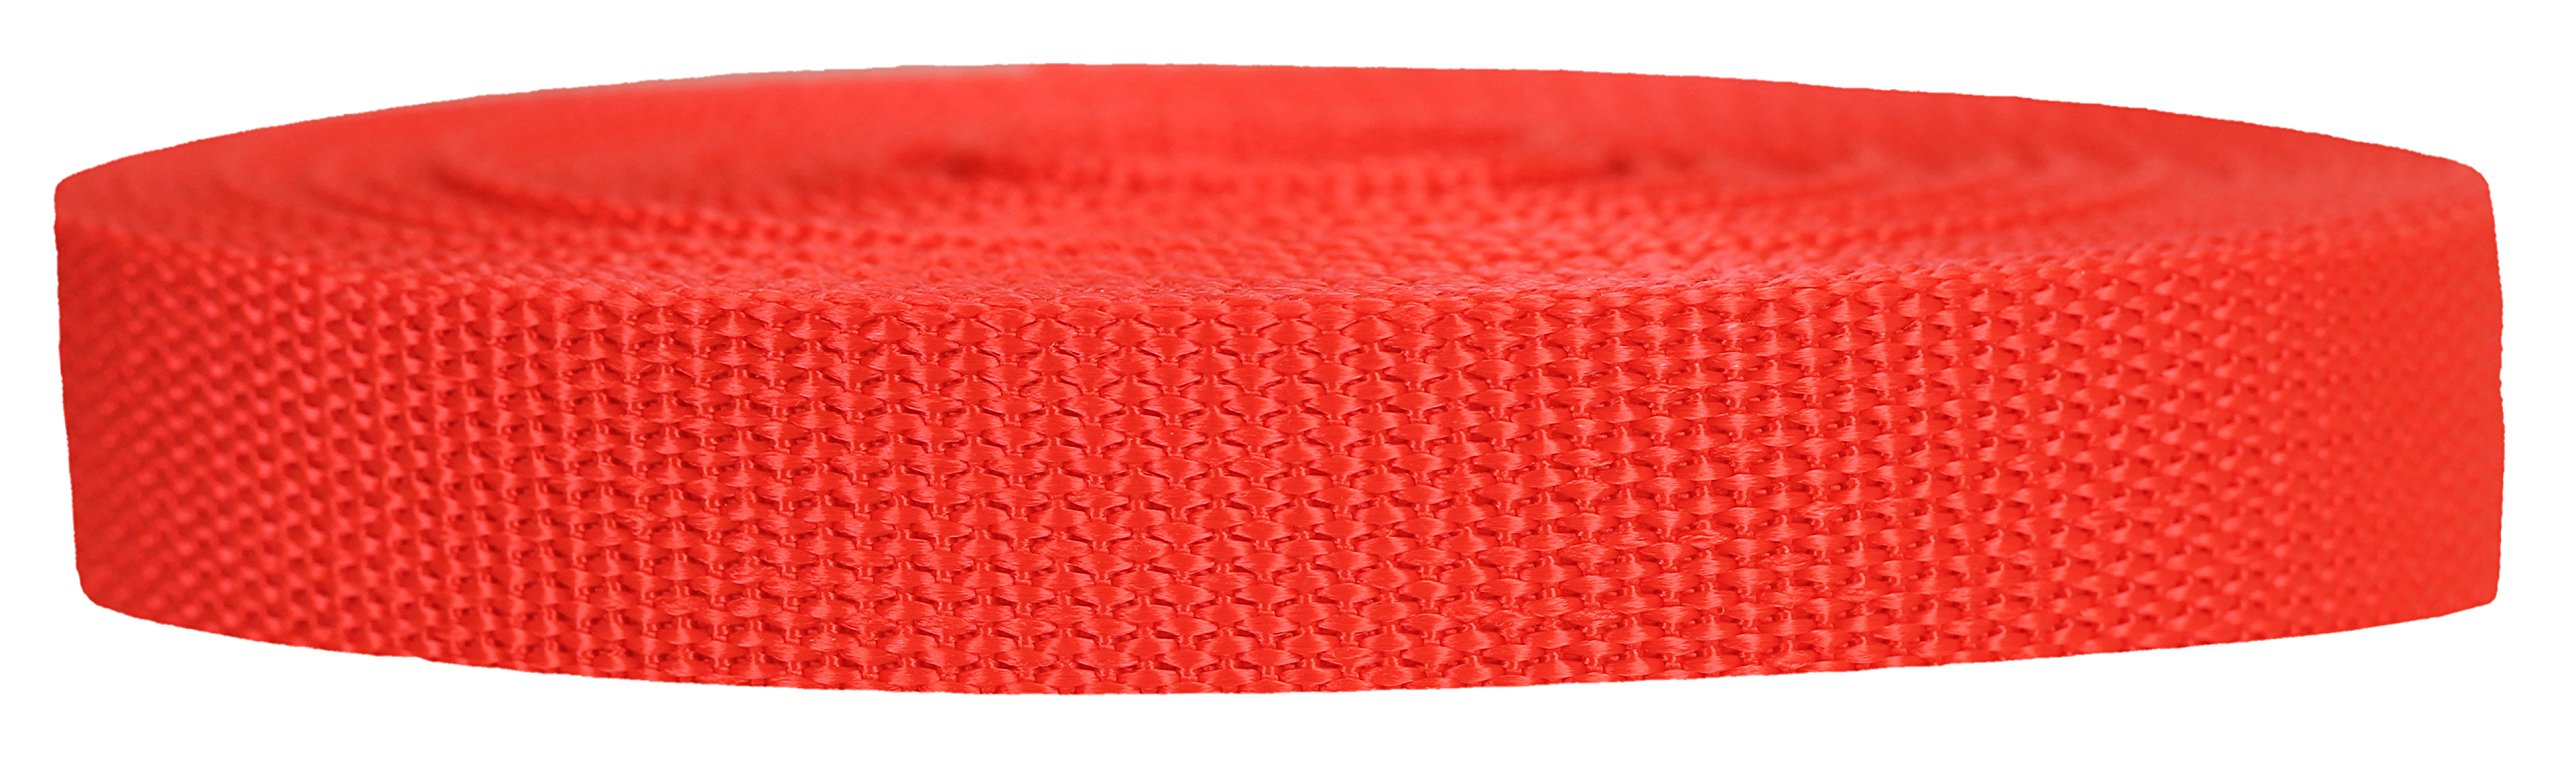 Strapworks Heavyweight Polypropylene Webbing - Heavy Duty Poly Strapping for Outdoor DIY Gear Repair, 3/4 Inch x 25 Yards, Blood Orange by Strapworks